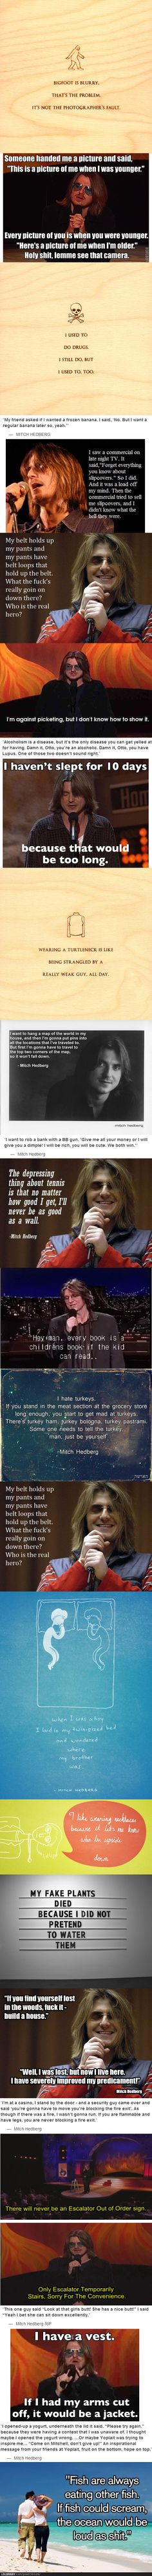 Mitch Hedberg was amazing - Truly!